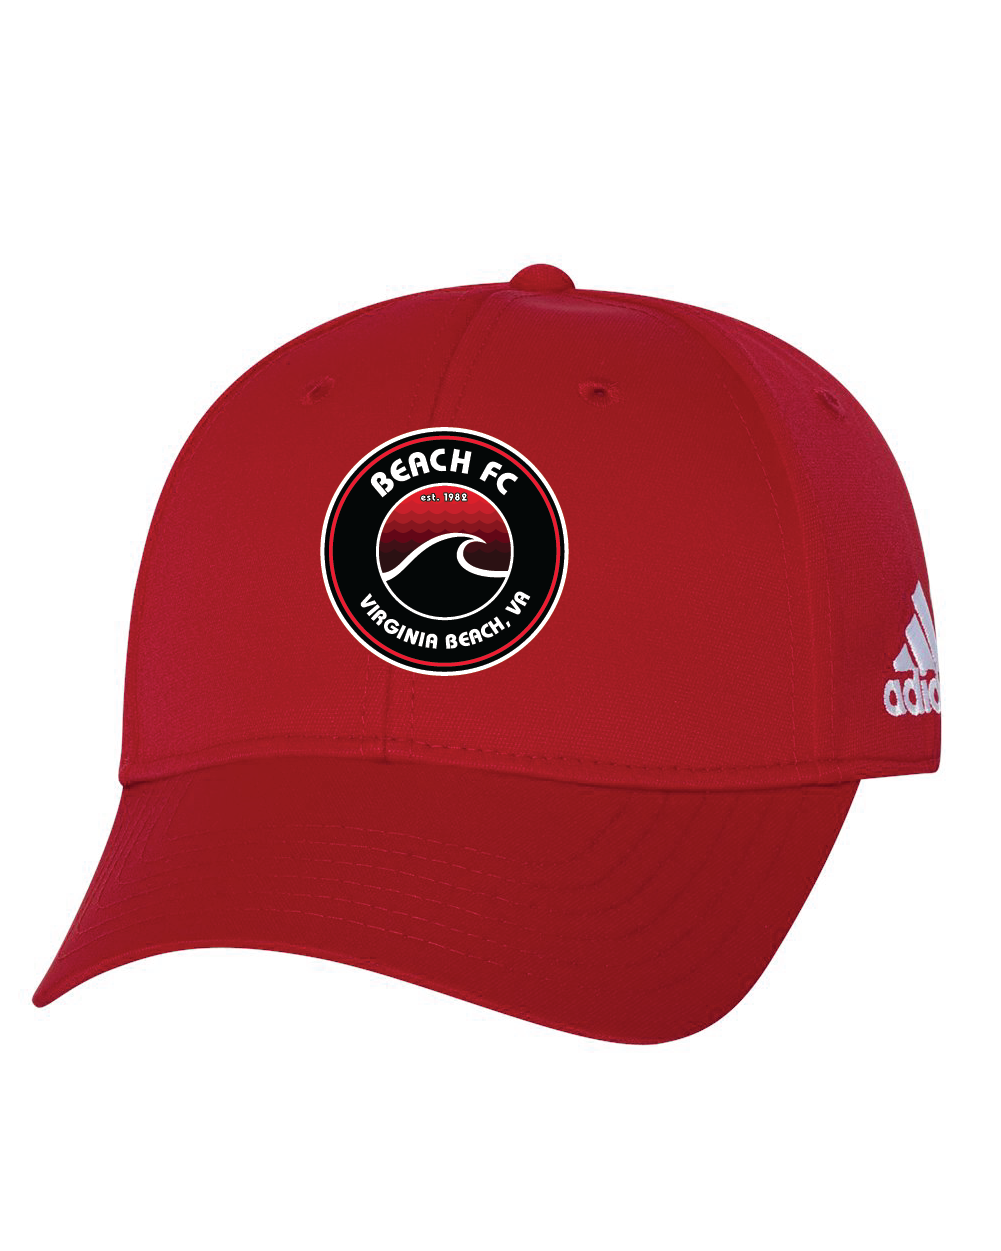 Adidas - Core Performance Max Structured Cap / Red  / Beach FC